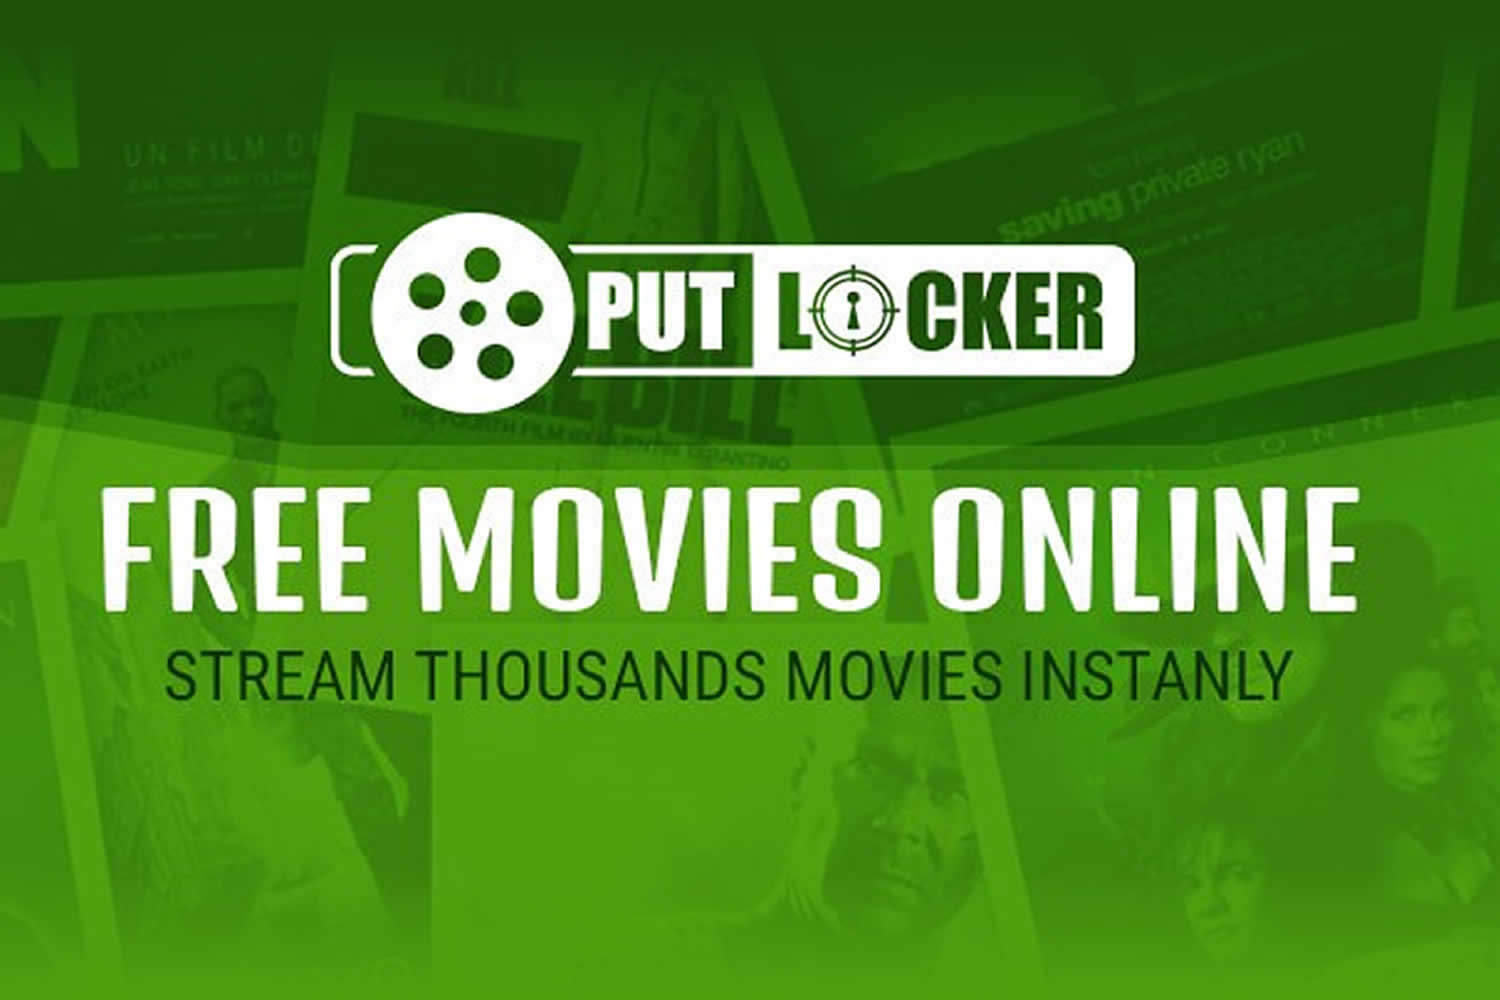 Watch Jericho Bridge Putlocker Movies